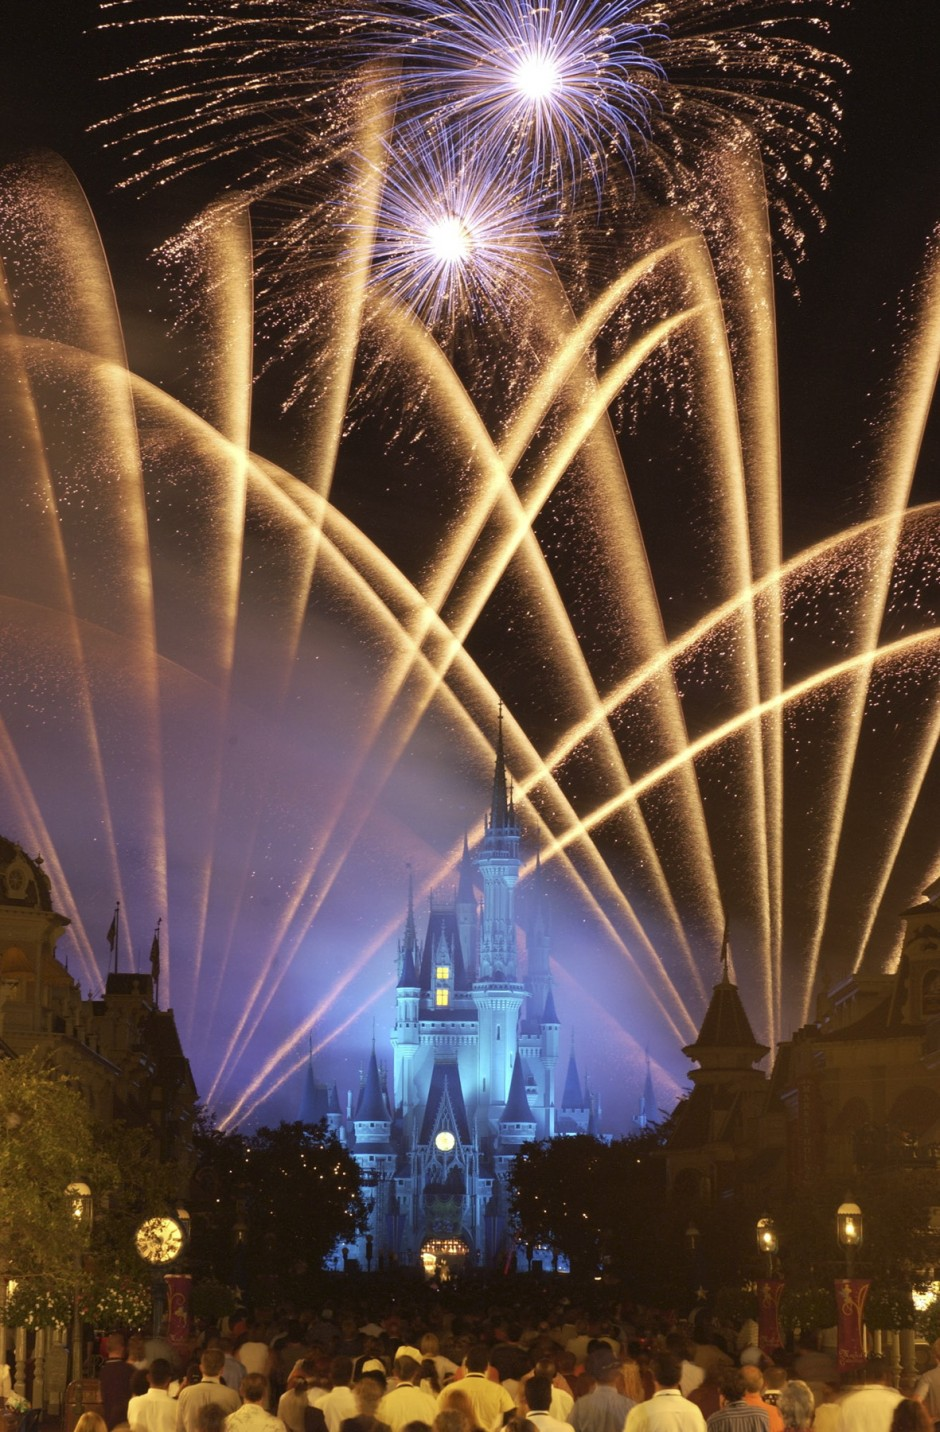 Disney Parks and Resorts Military Ticket and Room Rate Discounts and Dates for 2014 & 2015